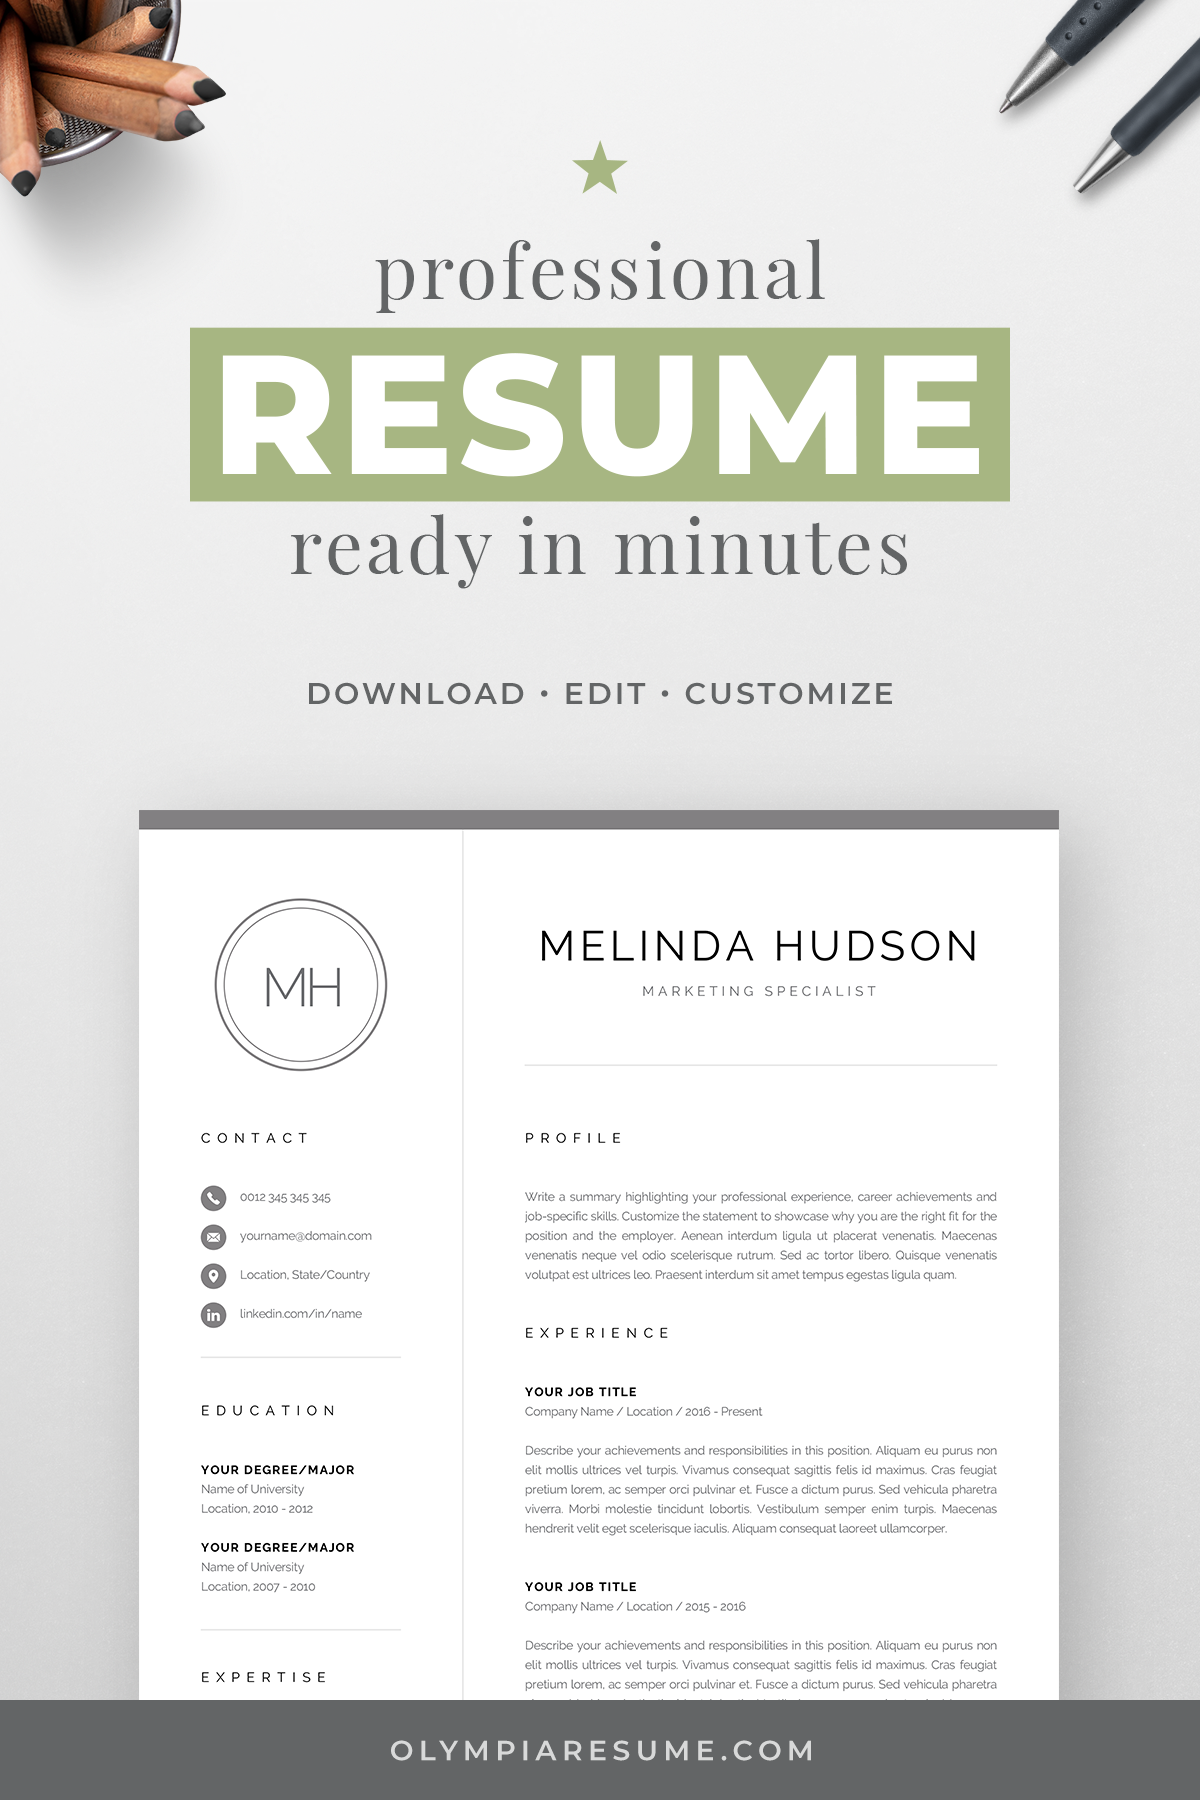 Modern Resume Template Cv Design With Initials Creative Etsy Modern Resume Template Resume Template Professional Resume Template